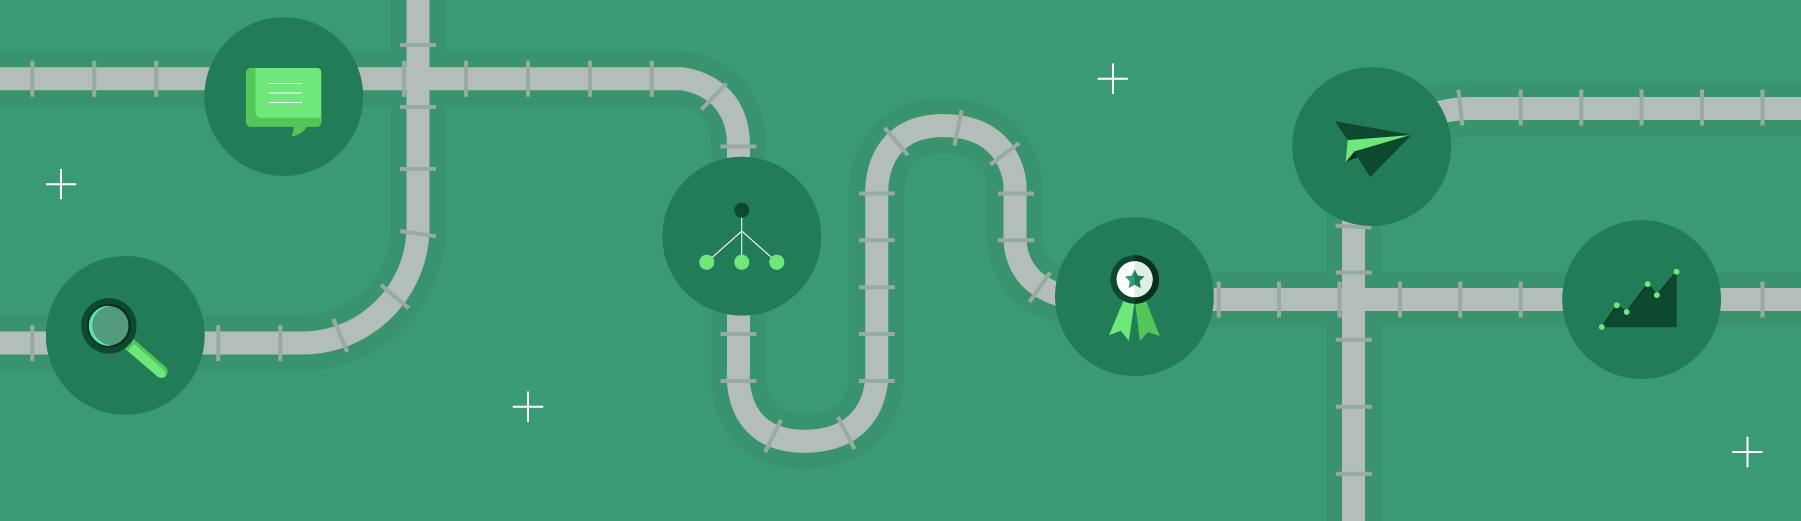 Email Lead Generation: How to Build Your Pipeline